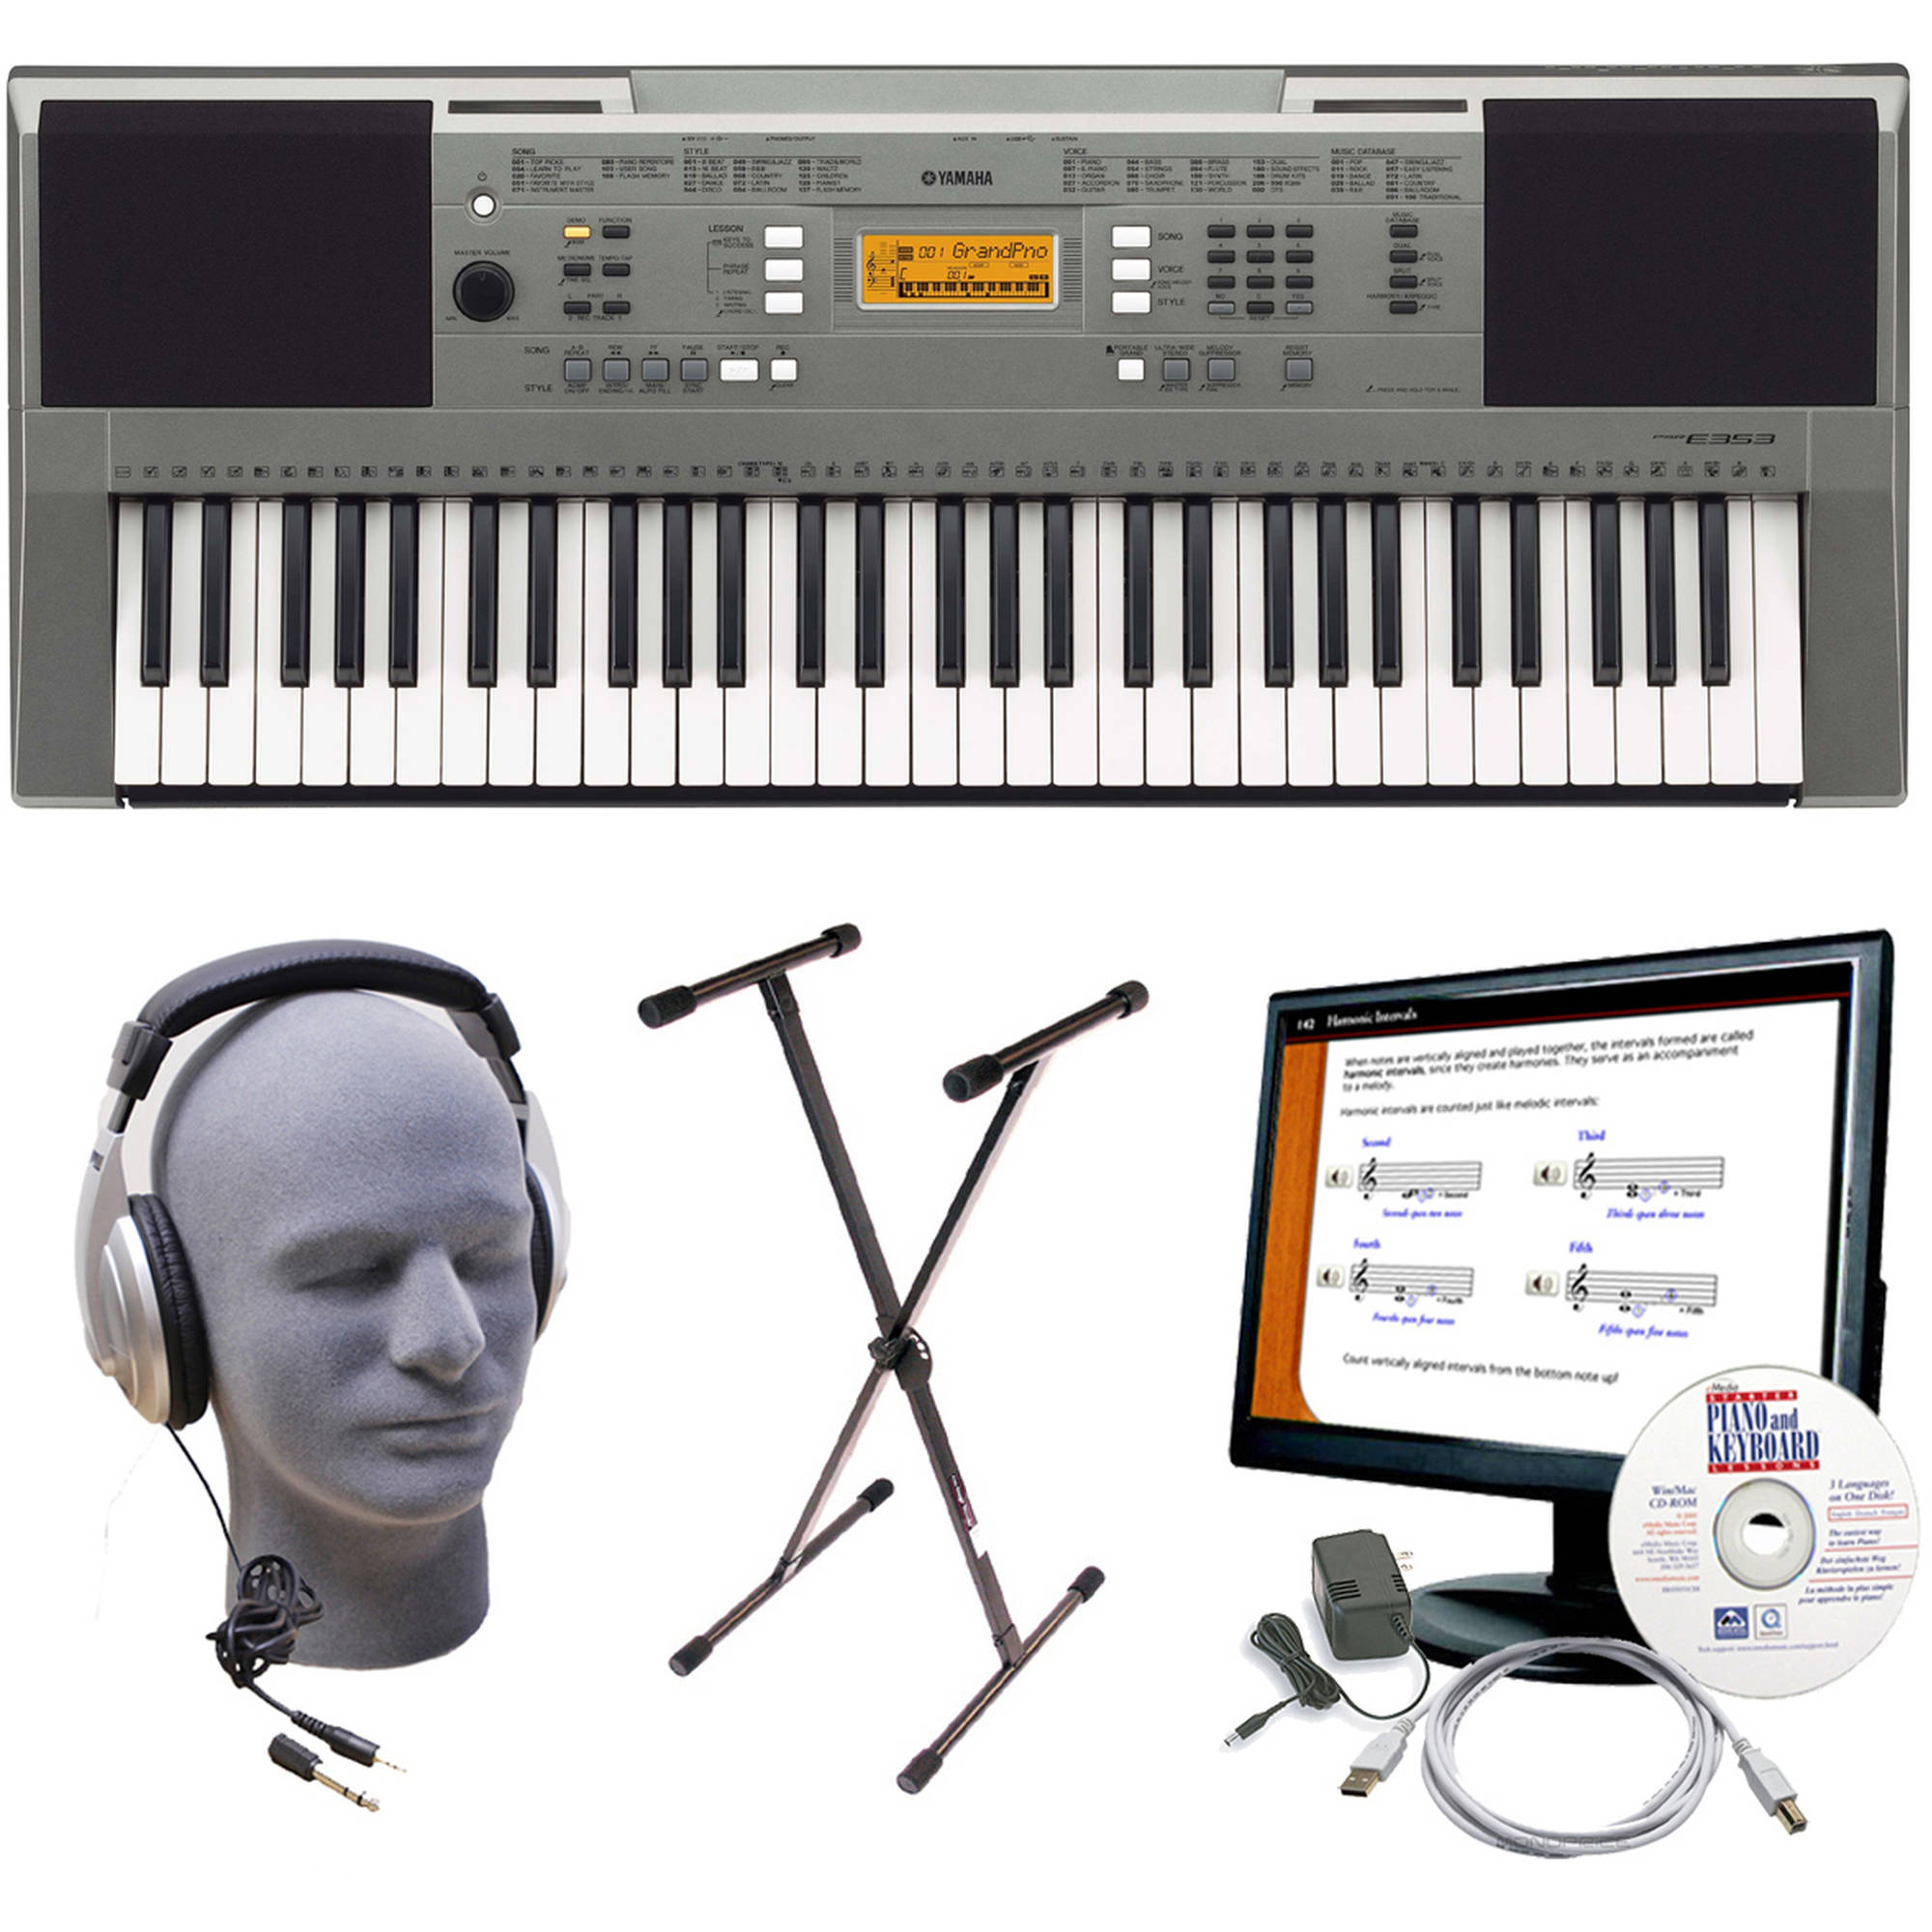 Yamaha PSR-E353 Portable Keyboard Package with Headphones, Power Supply, USB Cable, eMedia... by Yamaha